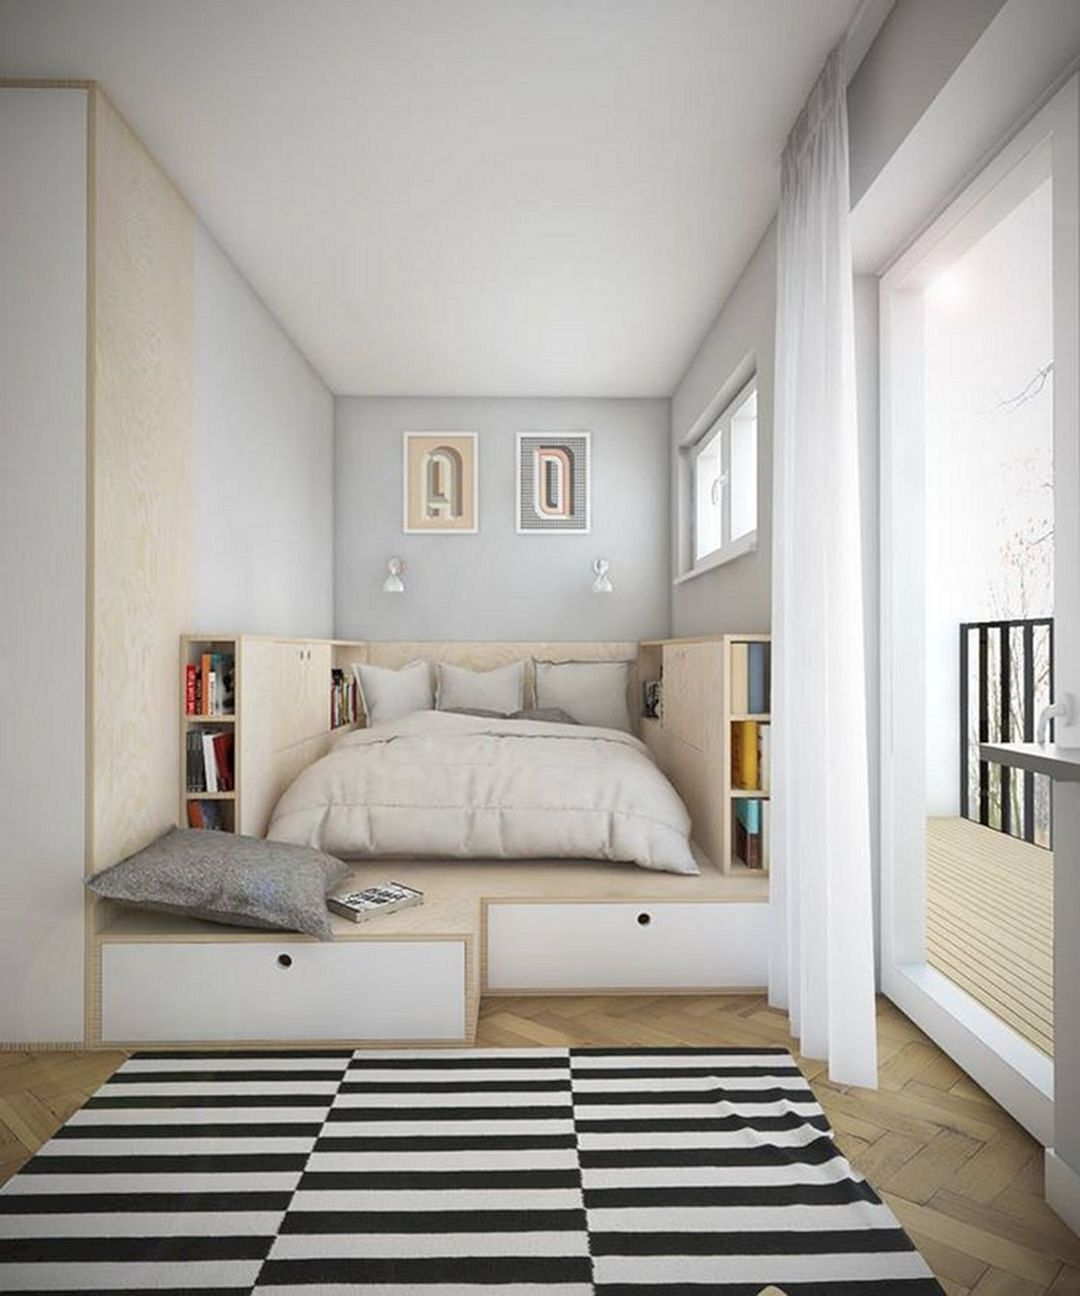 Astounding 15 Incredible Small Bedroom Storage Ideas To Organize Your Bedroom To Be Neatly The Idea Of Stor In 2020 Tiny Bedroom Design Tiny Bedroom Bedroom Interior